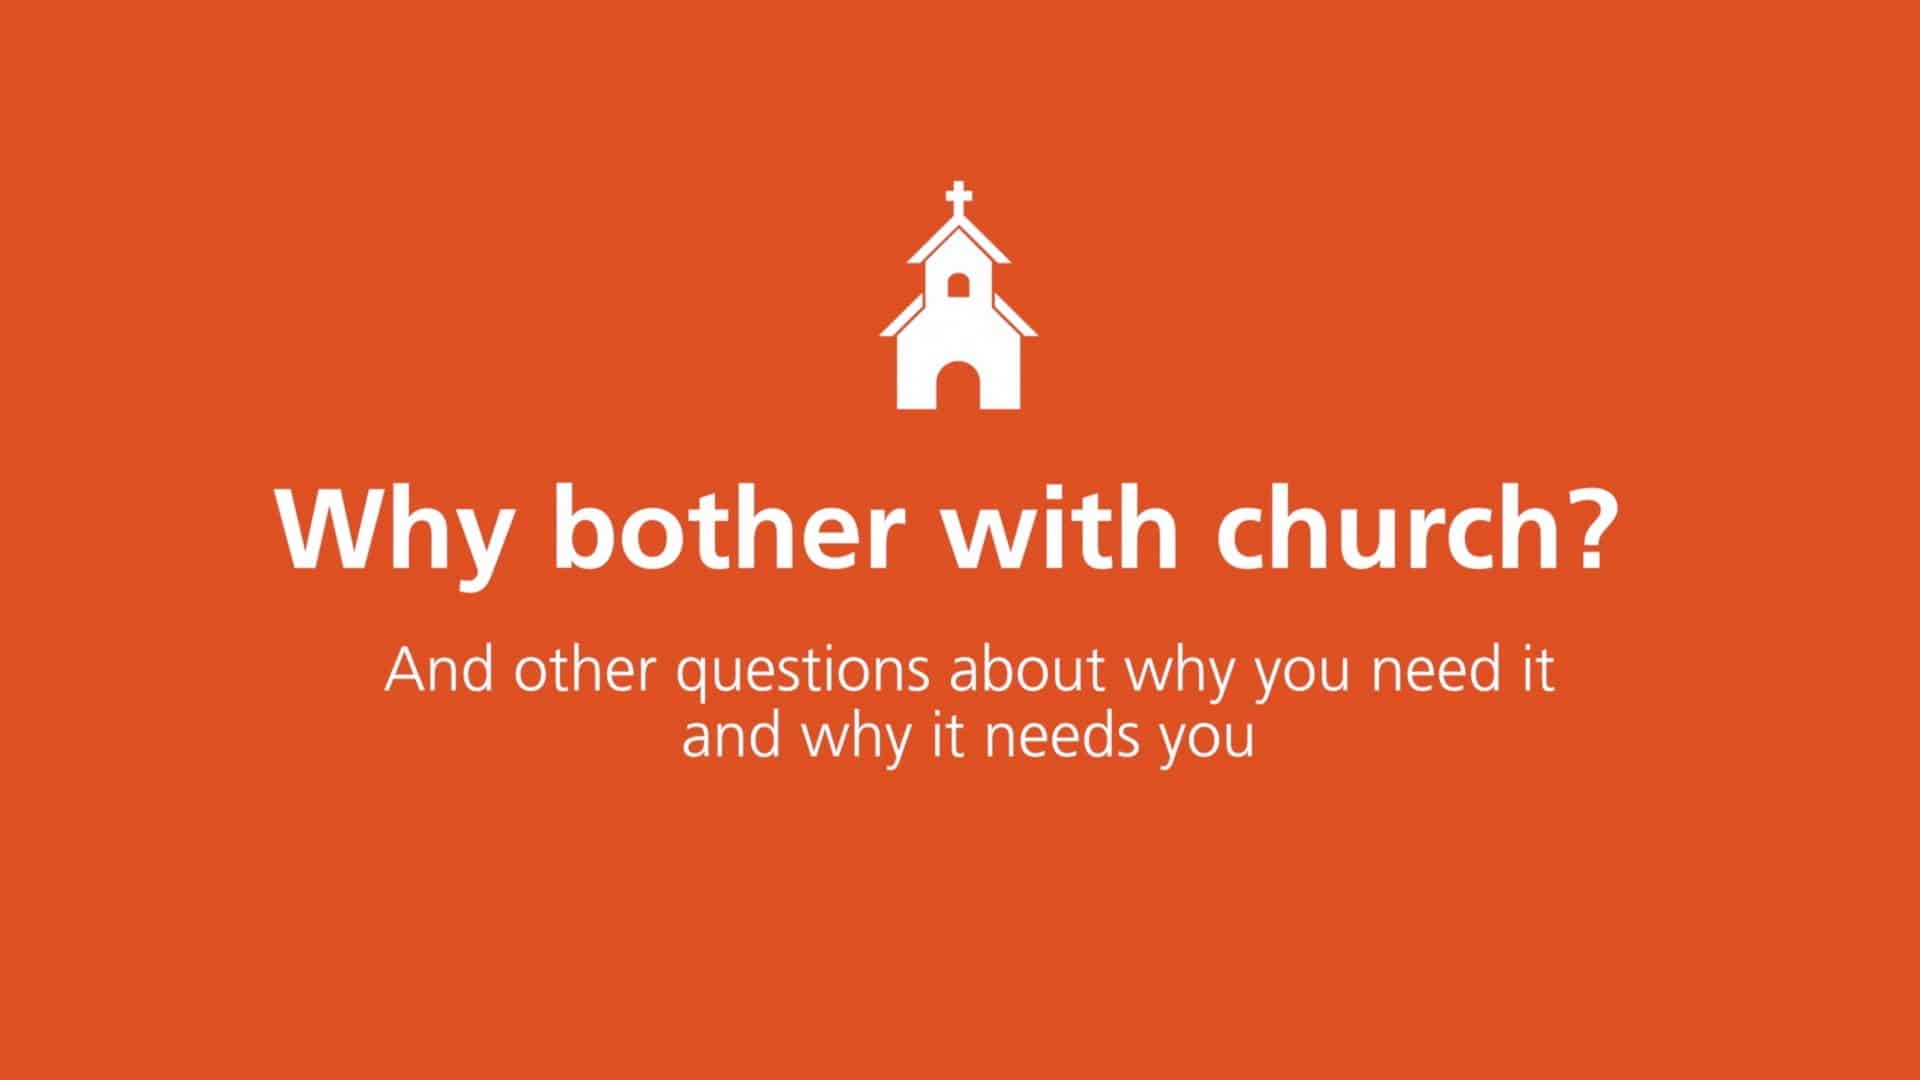 Bother, Why Bother with Church? And Other Questions About Why You Need It and Why It Needs You by Sam Allberry, Servants of Grace, Servants of Grace